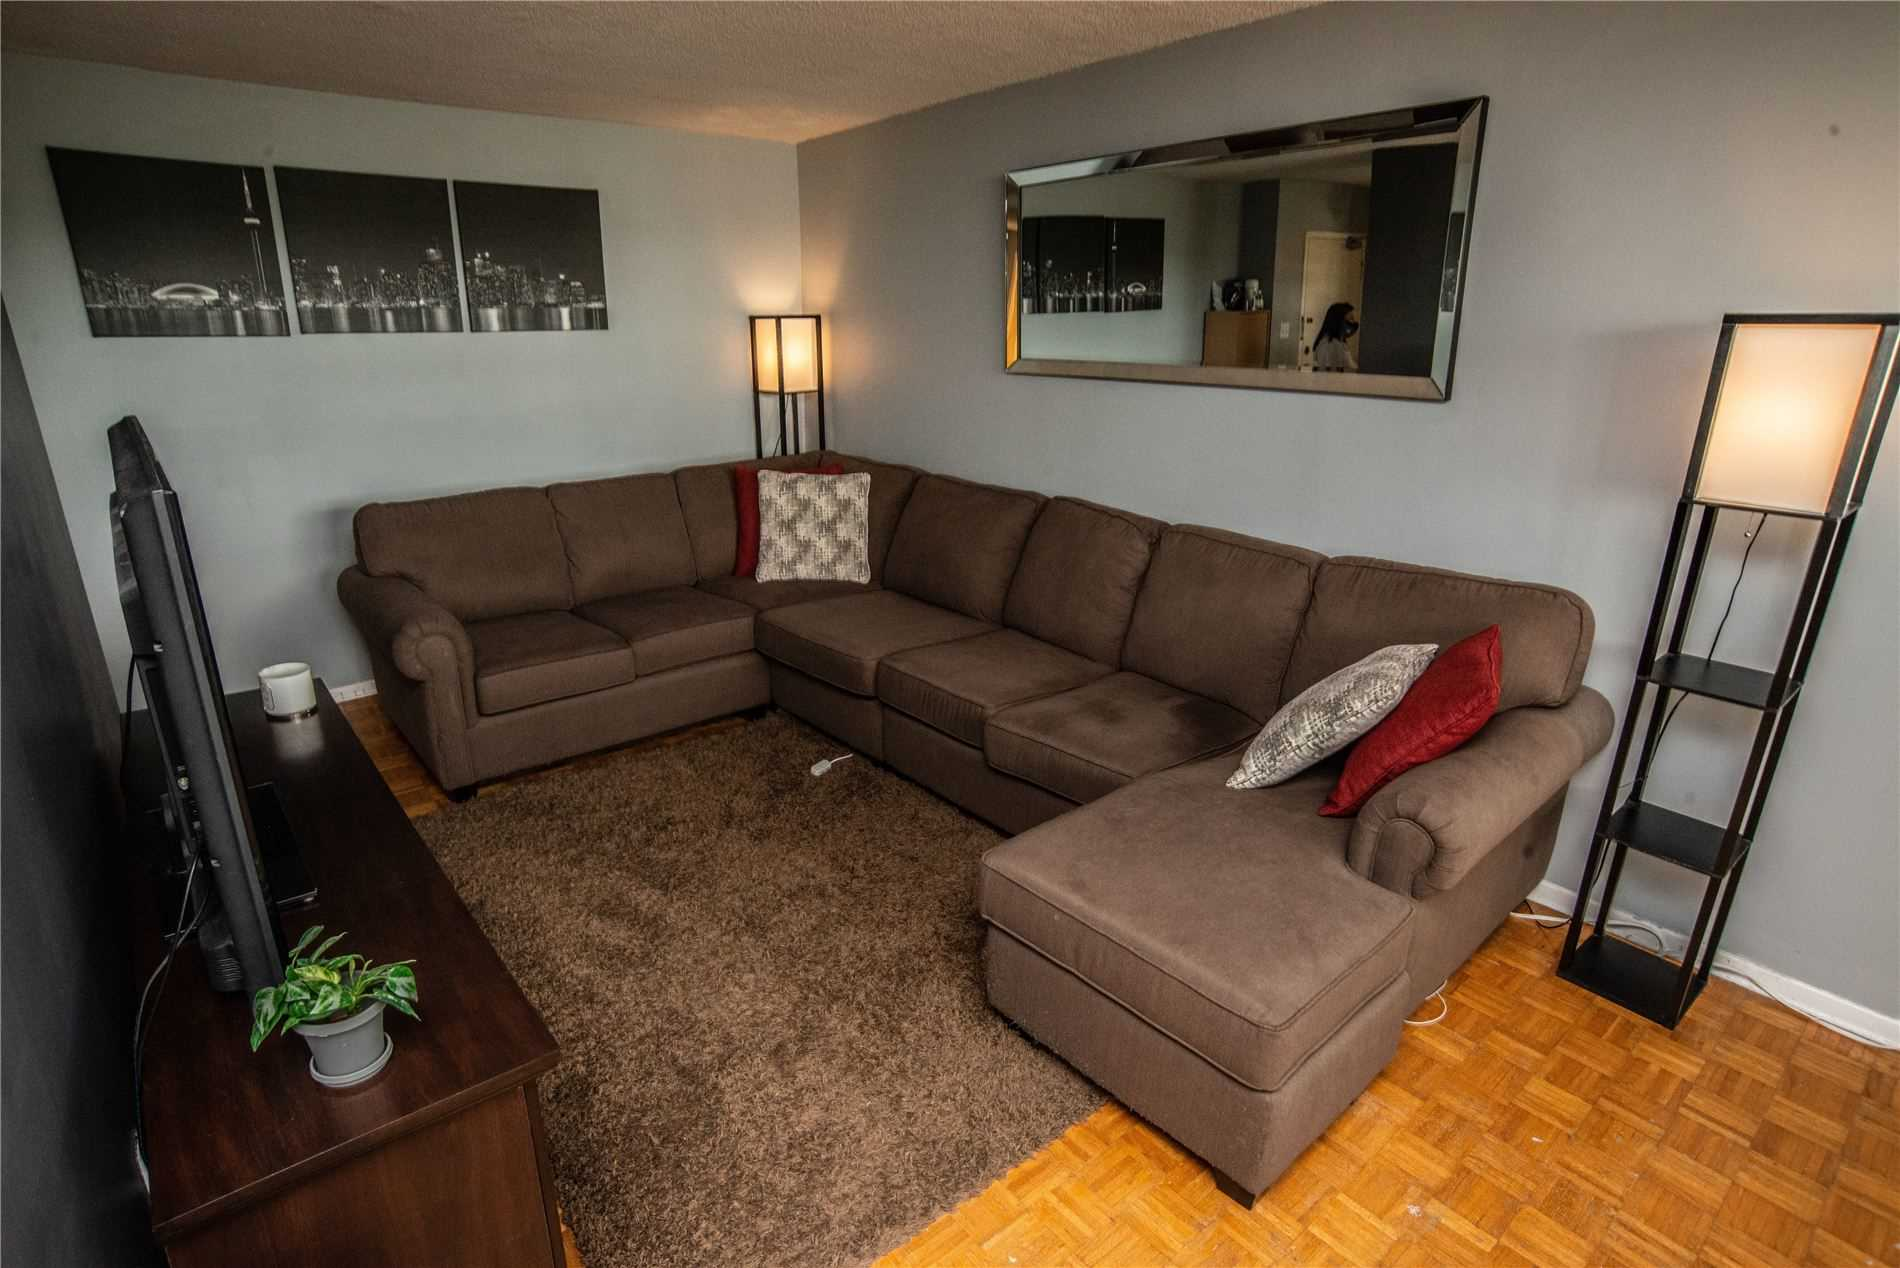 Image 15 of 20 showing inside of 1 Bedroom Condo Apt Apartment for Sale at 215 Glenridge Ave Unit# 310, St. Catharines L2T3J7